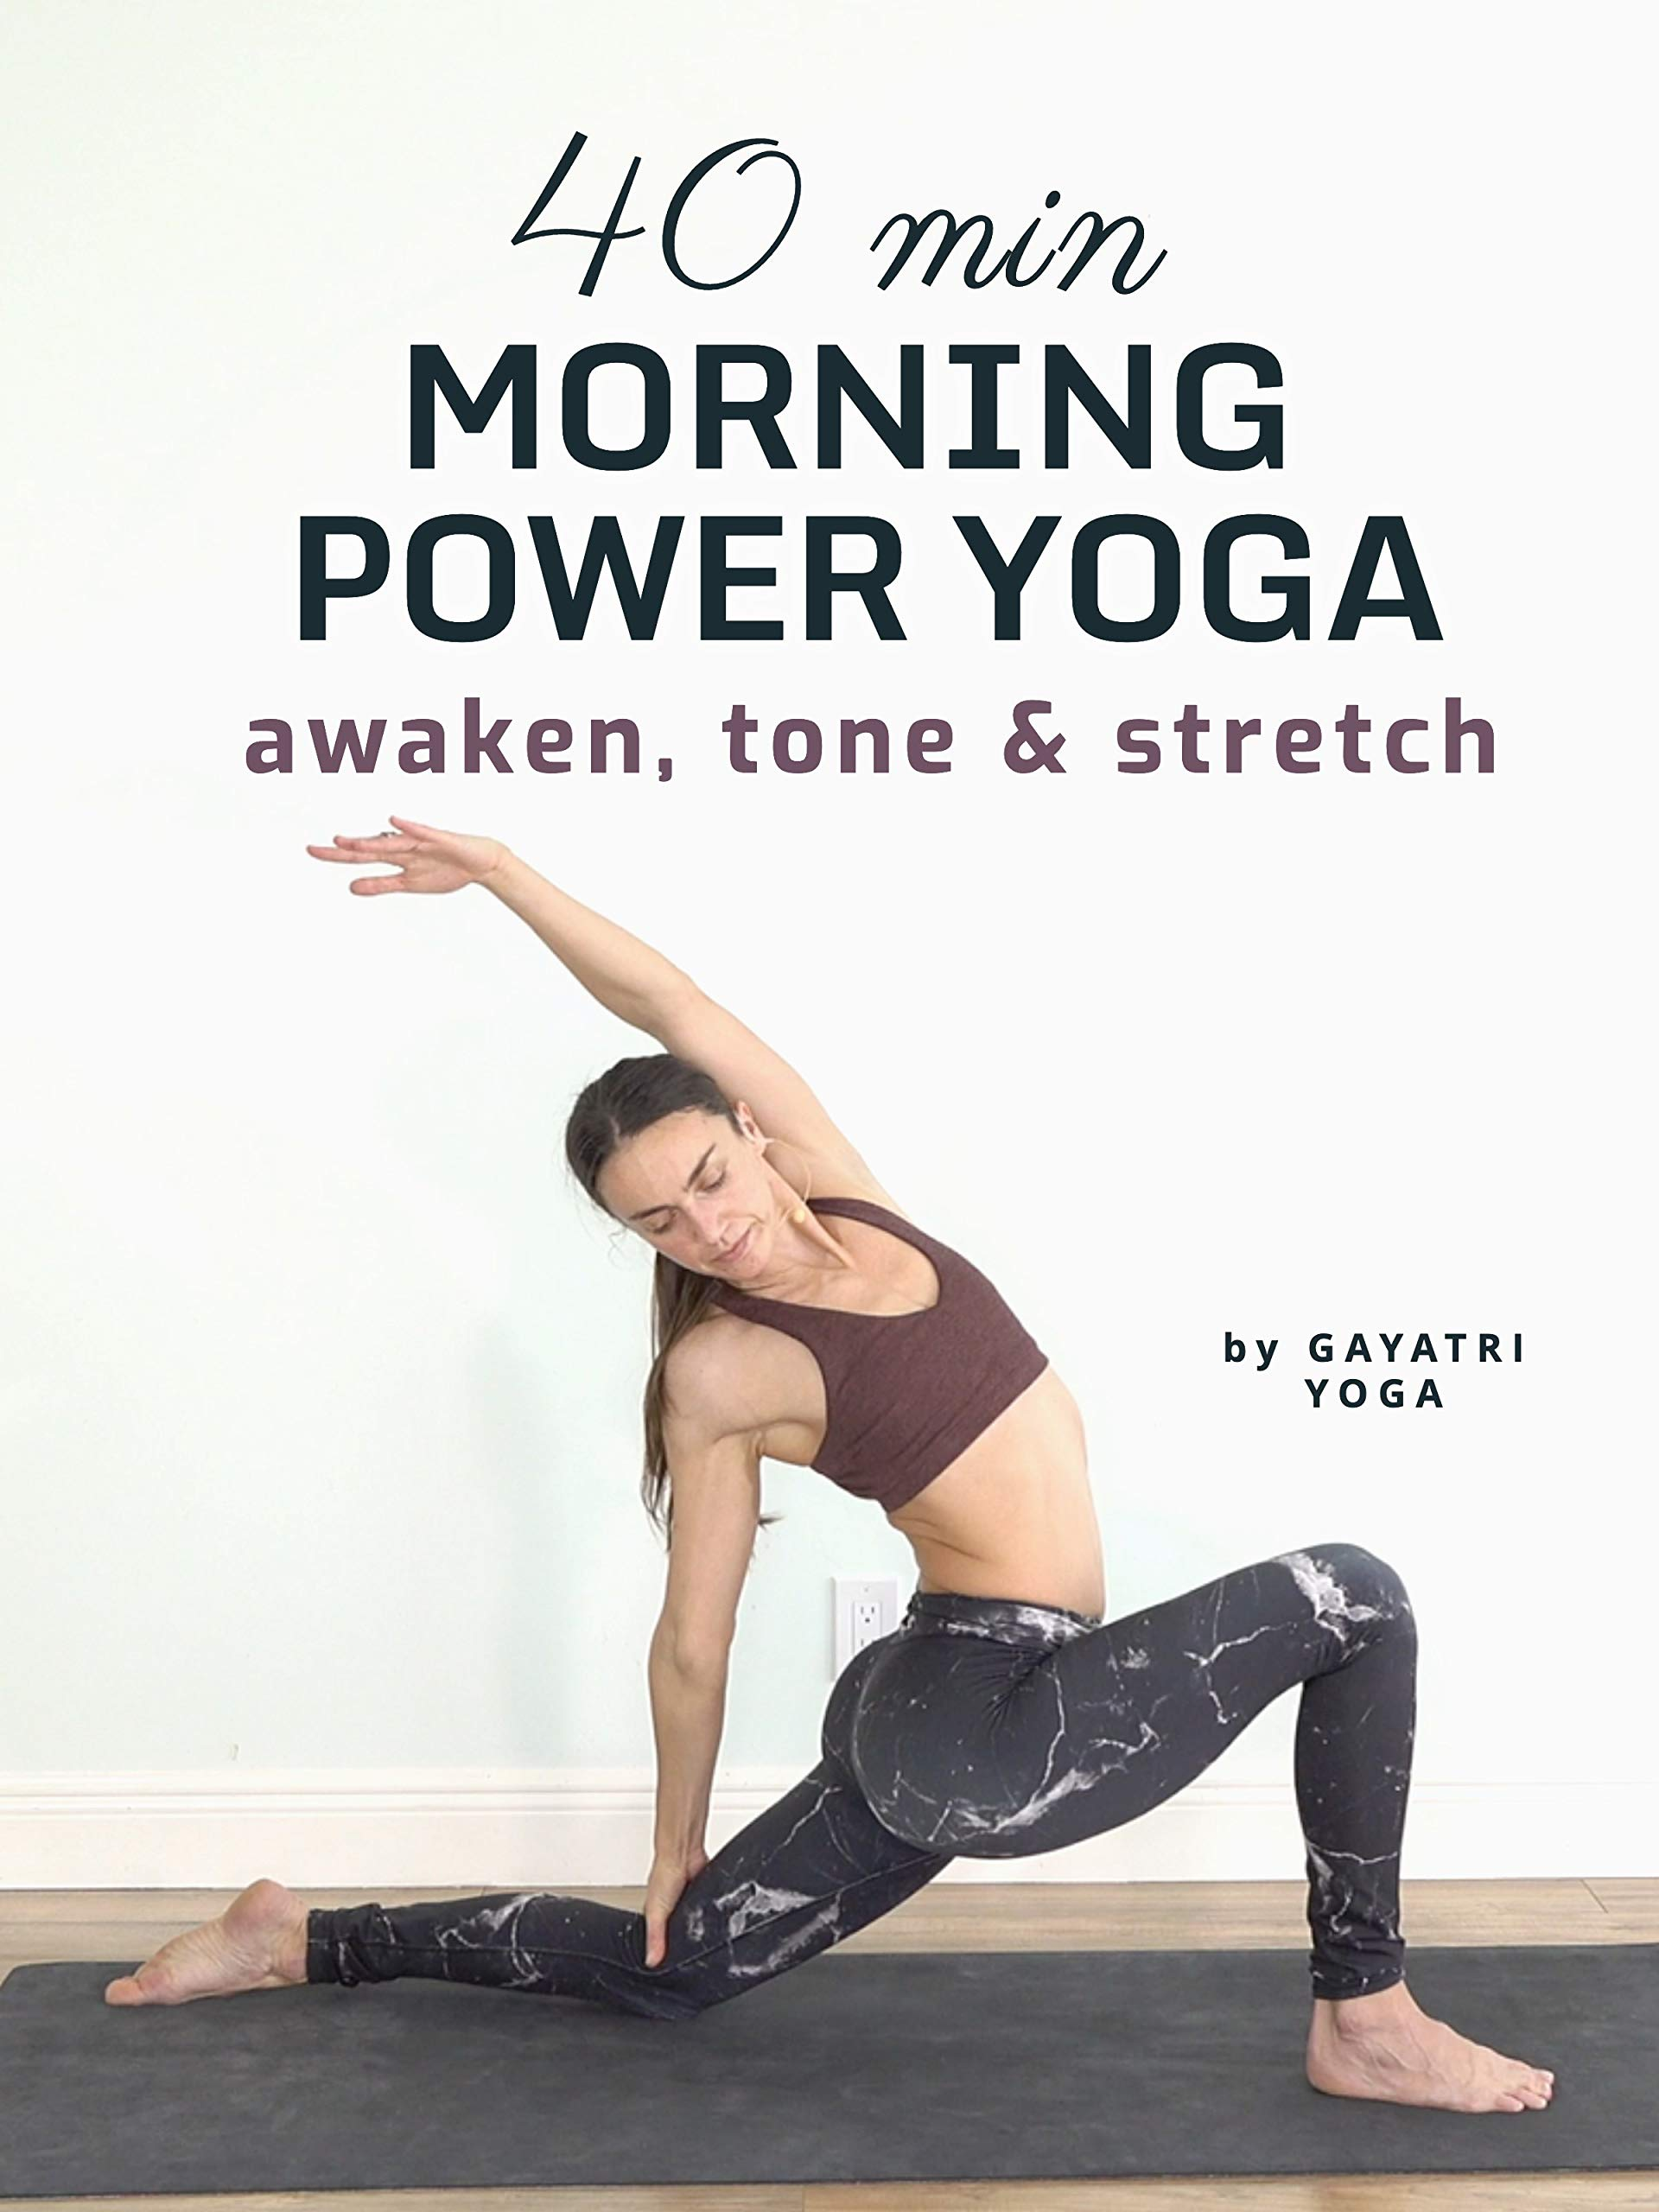 40 Min Morning Power Yoga - Awaken, Tone & Stretch - Gayatri Yoga